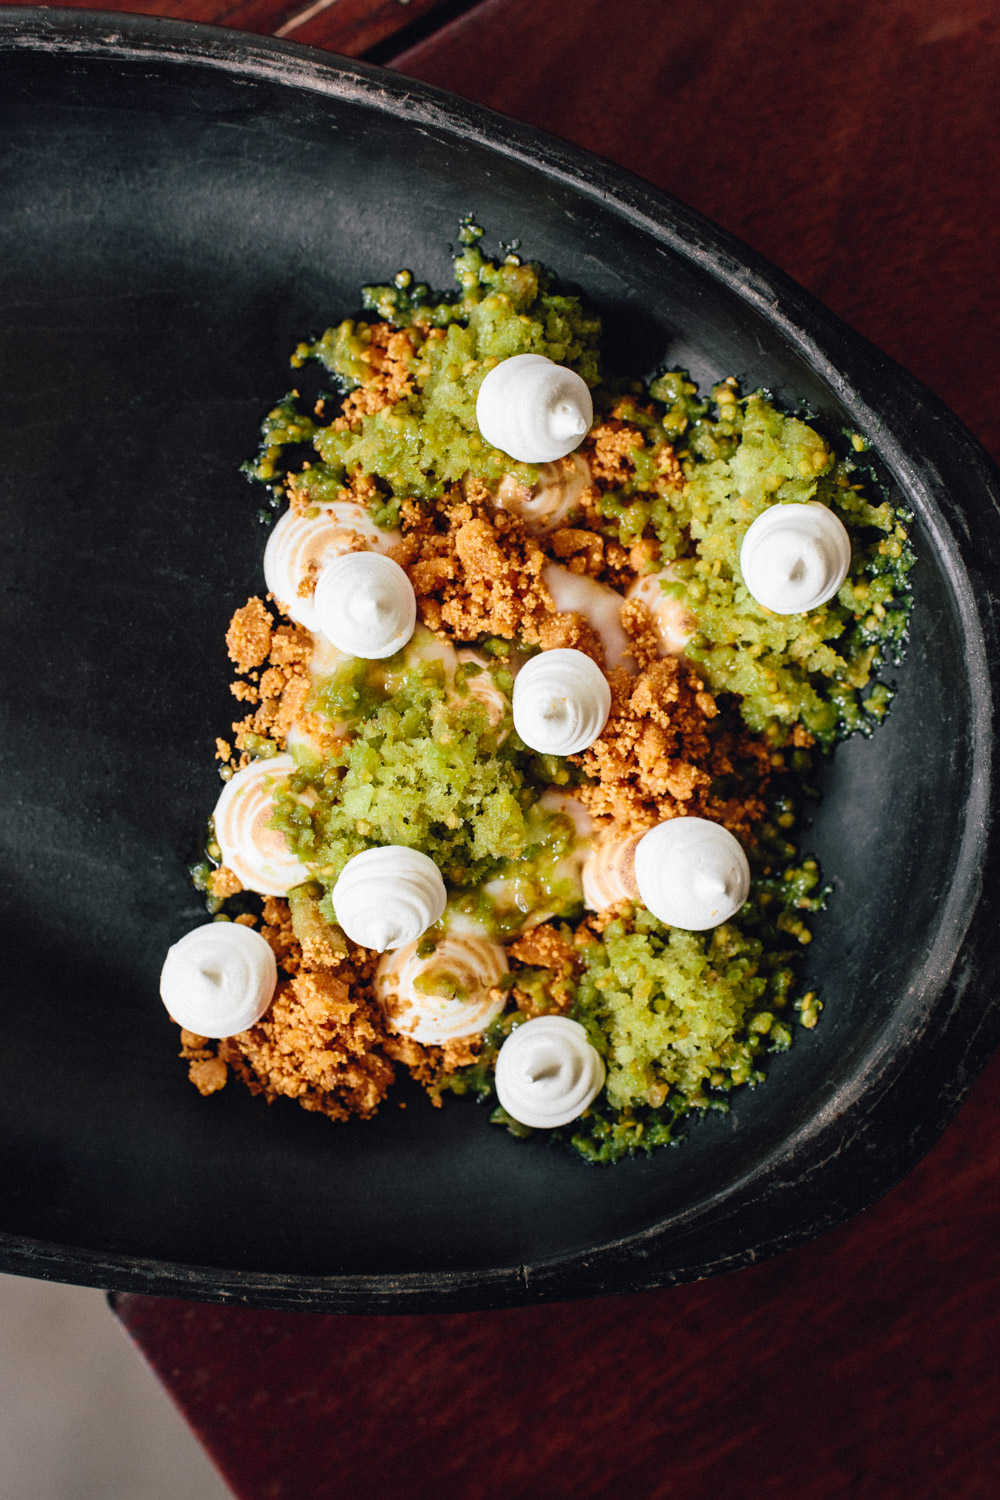 "A dessert adapted from traditional Colombian ""Merengon"". The green sauce is blended Lulo fruit, with crumble made from milk-powder, butter and coffee-syrup caramel. Beneath that is a guanábana (soursop fruit) compote. Topped with a mix of fresh and ""baked"" meringues: made in a dehydrator, half of them blow-torched. Tart, sweet, fresh with various textures.. Mmmm!"